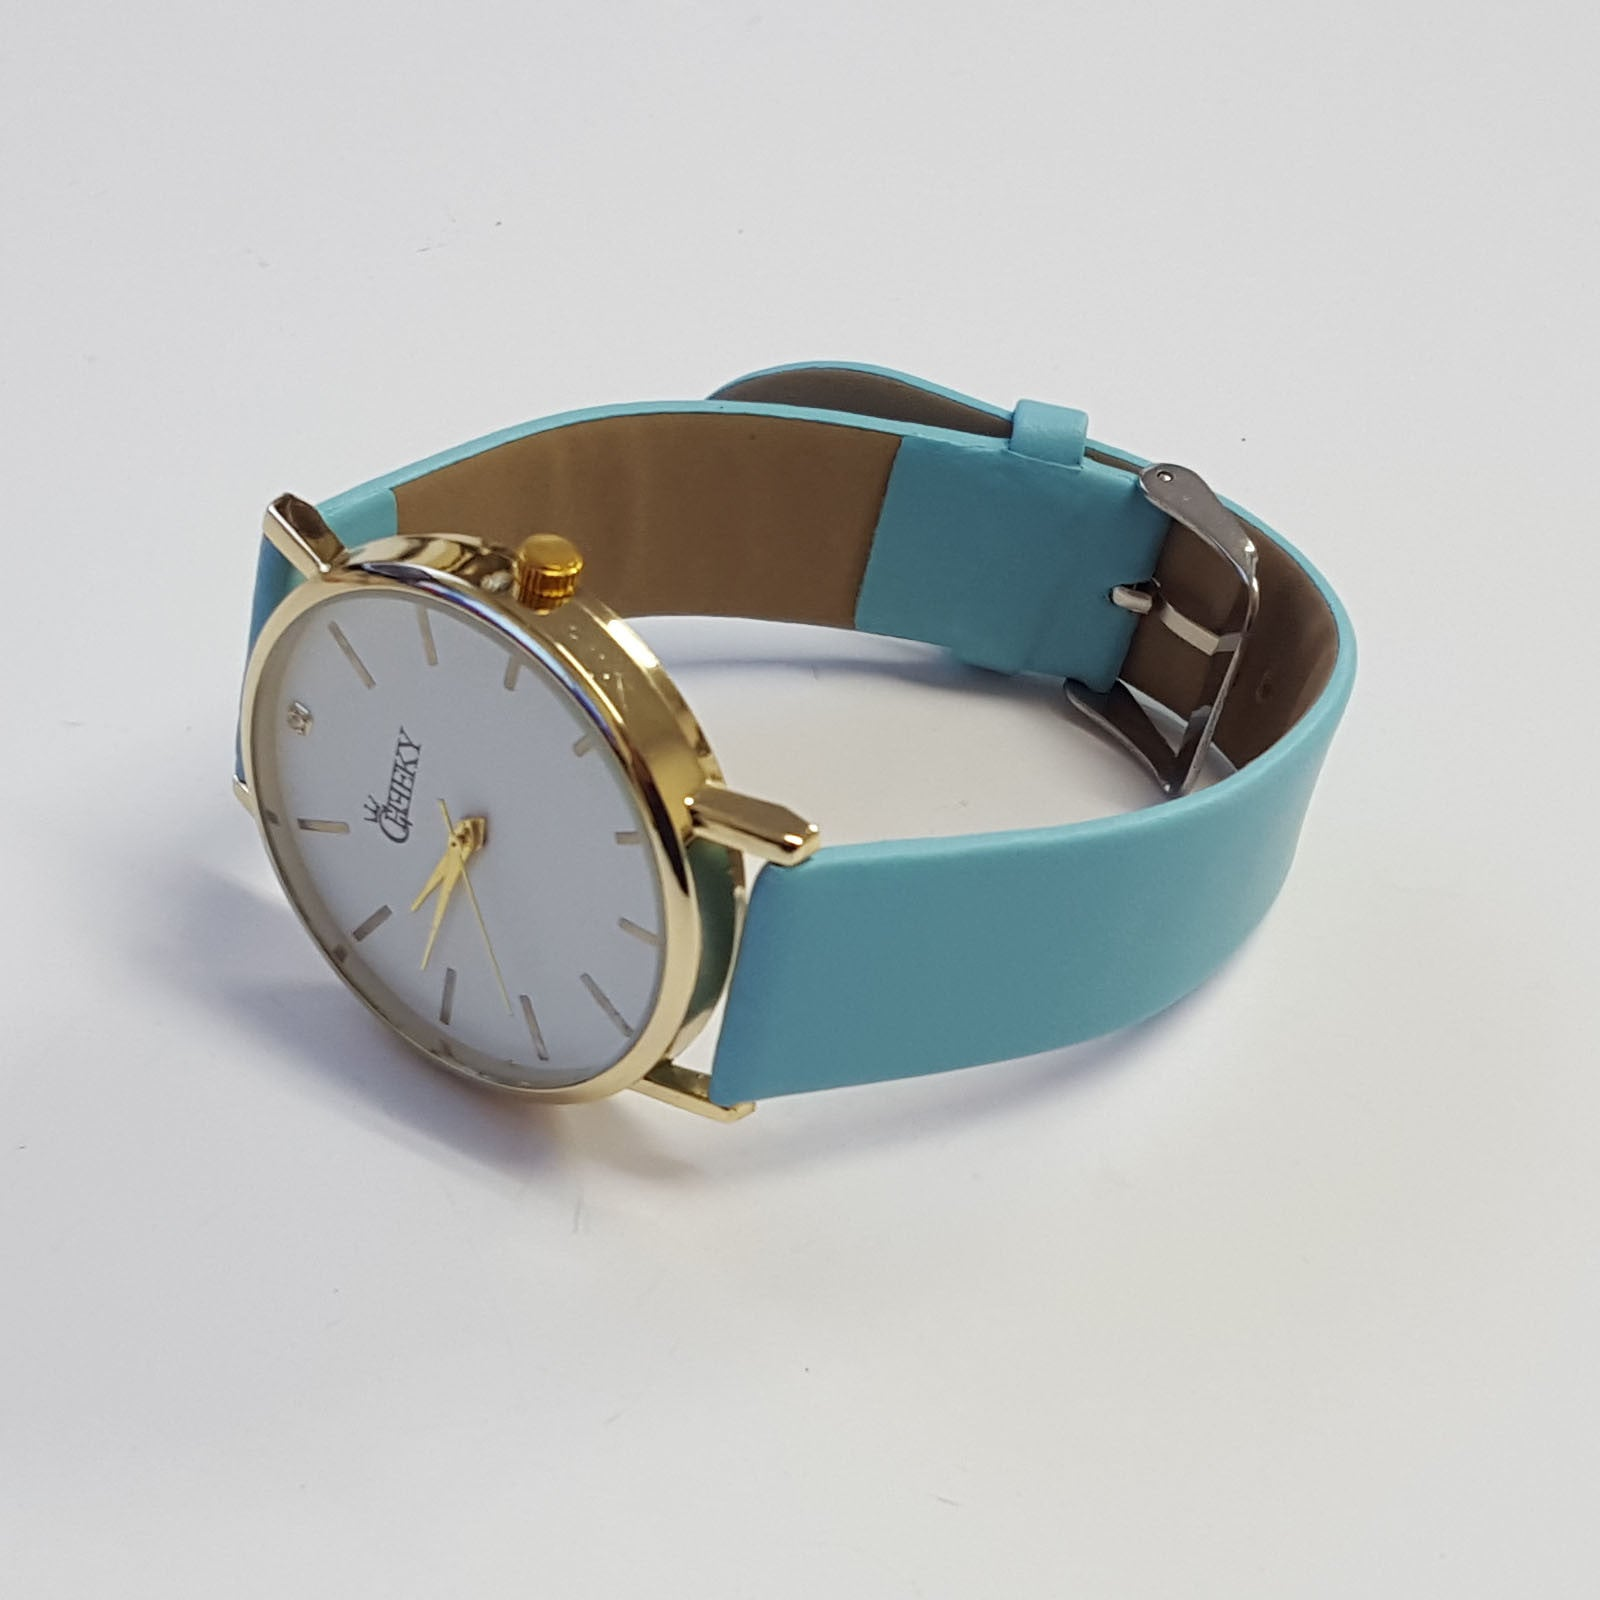 cheeky ladies faux blue leather large face analogue watch he010 cheeky ladies faux blue leather large face analogue watch he010 light blue